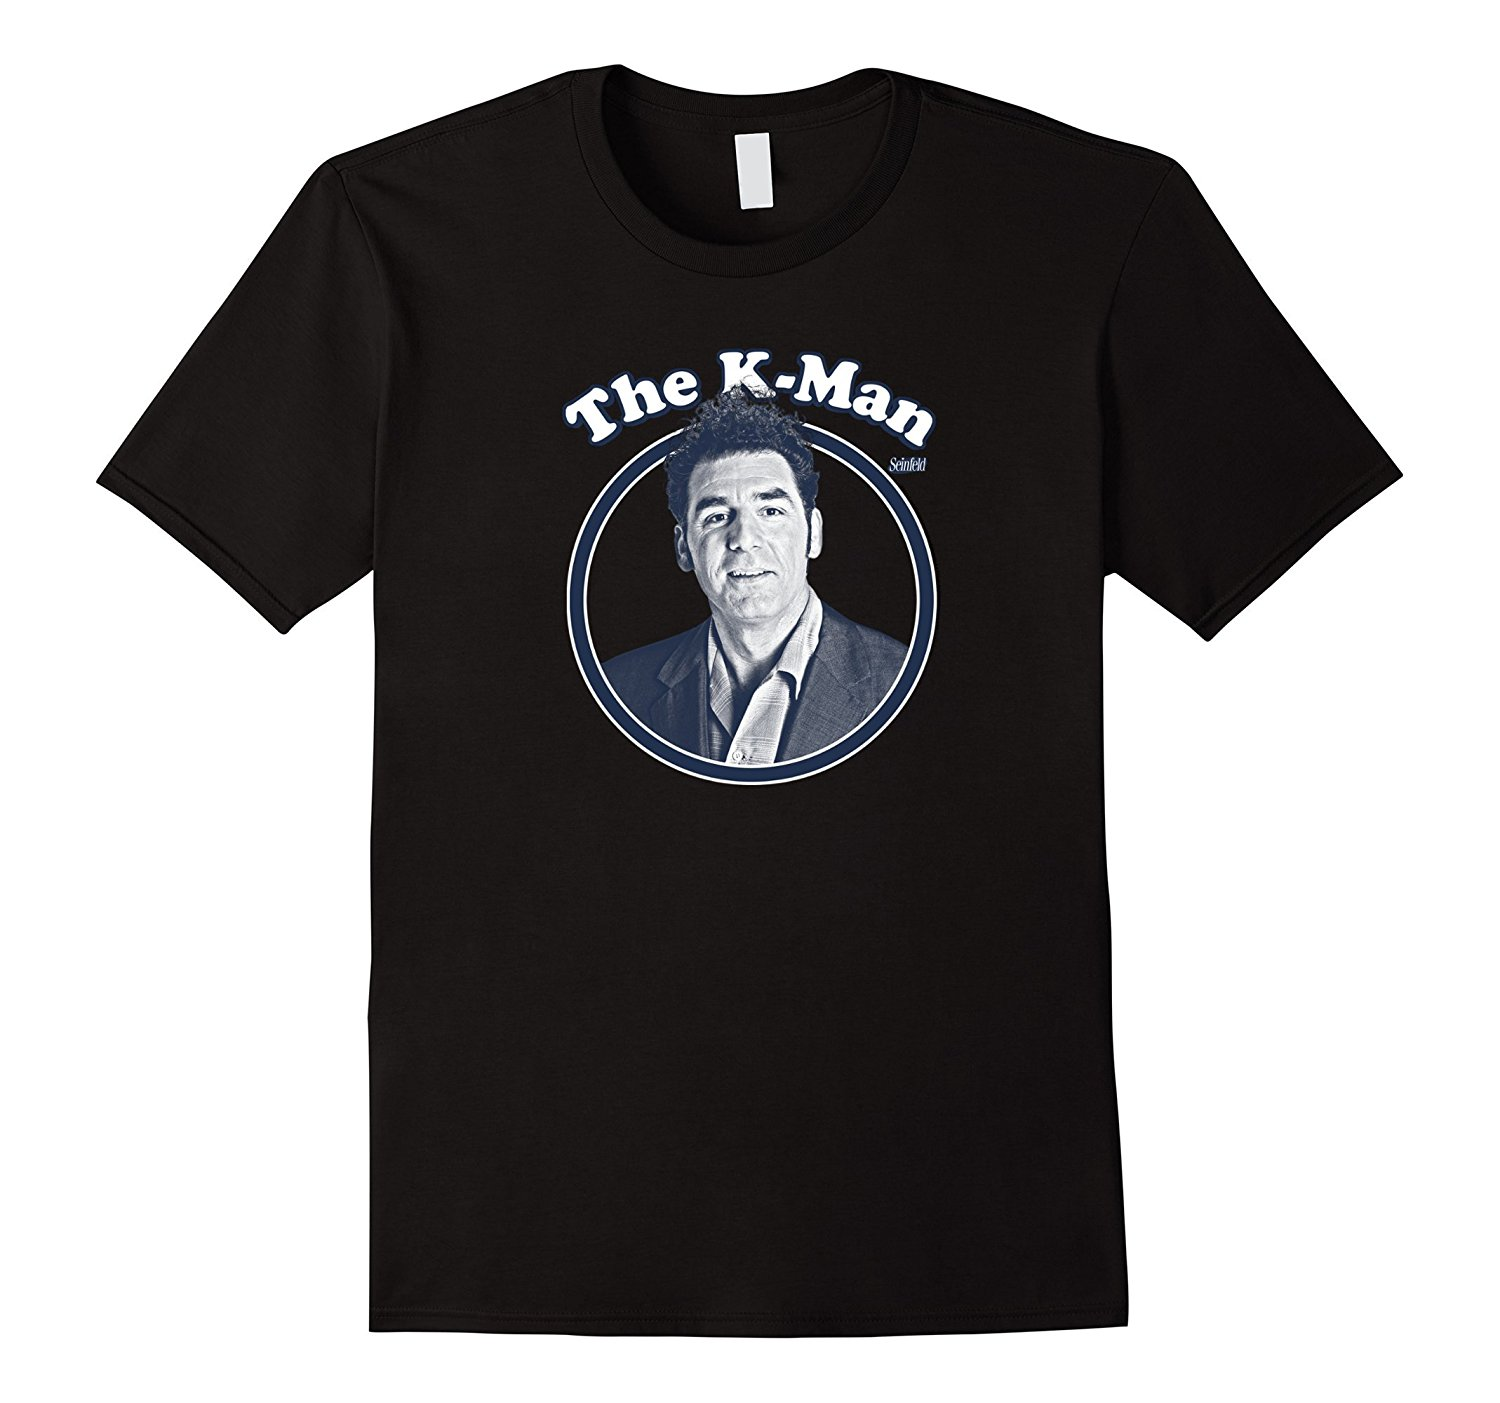 09e872a364a Seinfeld The K Man 2017 hot Summer funny cool Fashion Printed Hipster Tops  men s T Shirt-in T-Shirts from Men s Clothing on Aliexpress.com